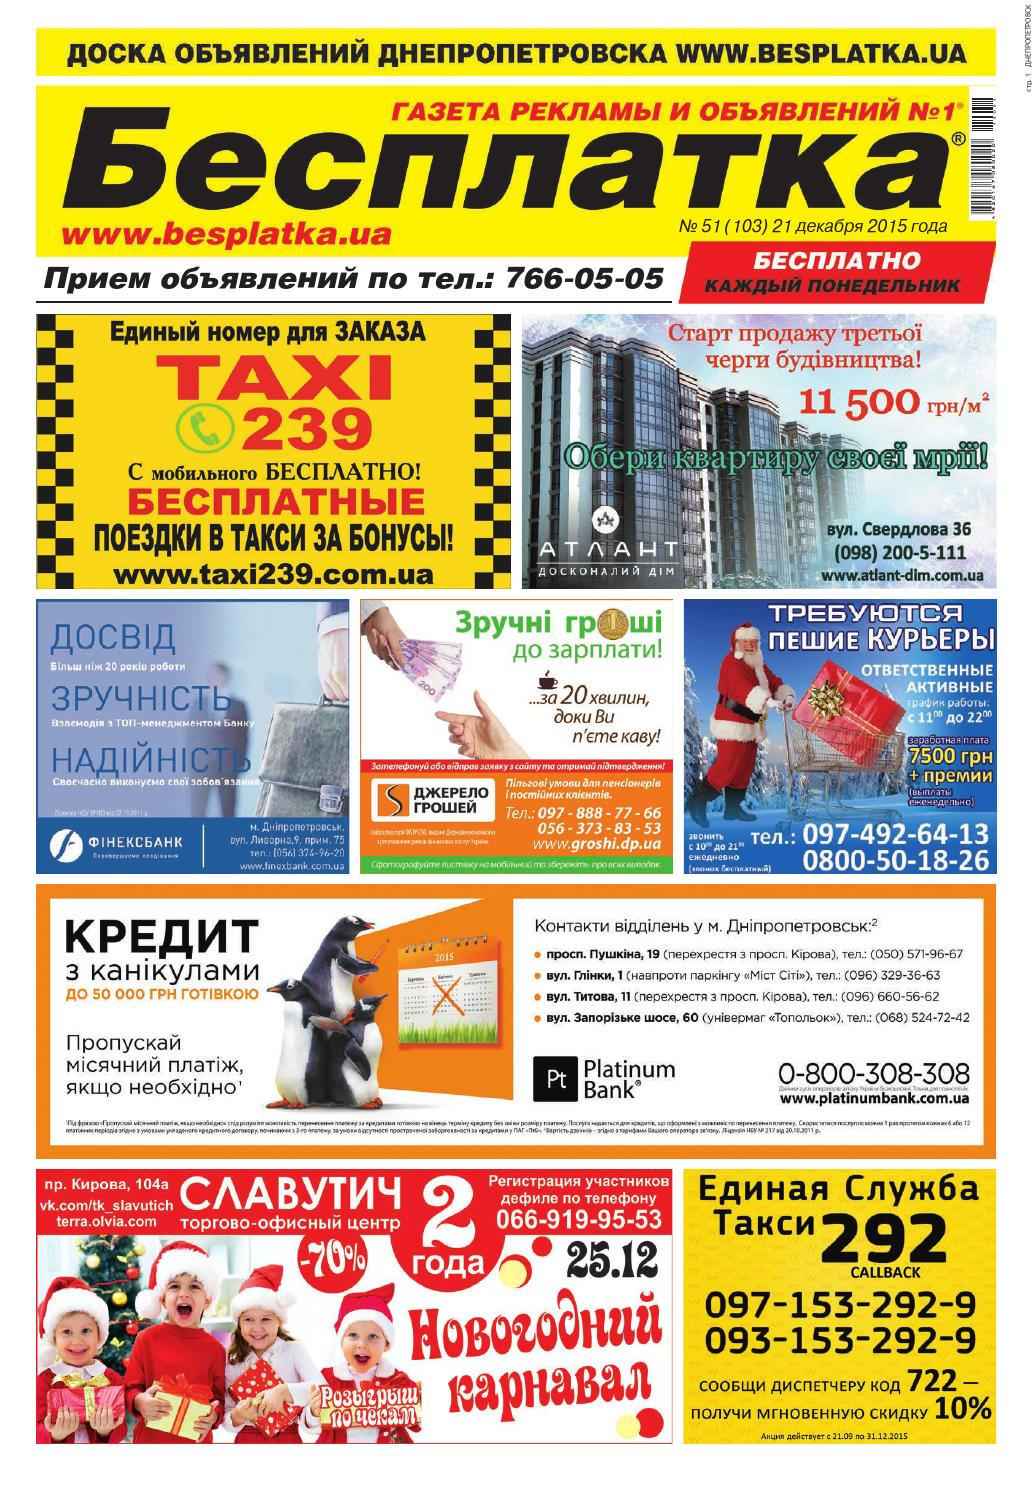 0e9eb1e2b208 Besplatka #51 Днепропетровск by besplatka ukraine - issuu